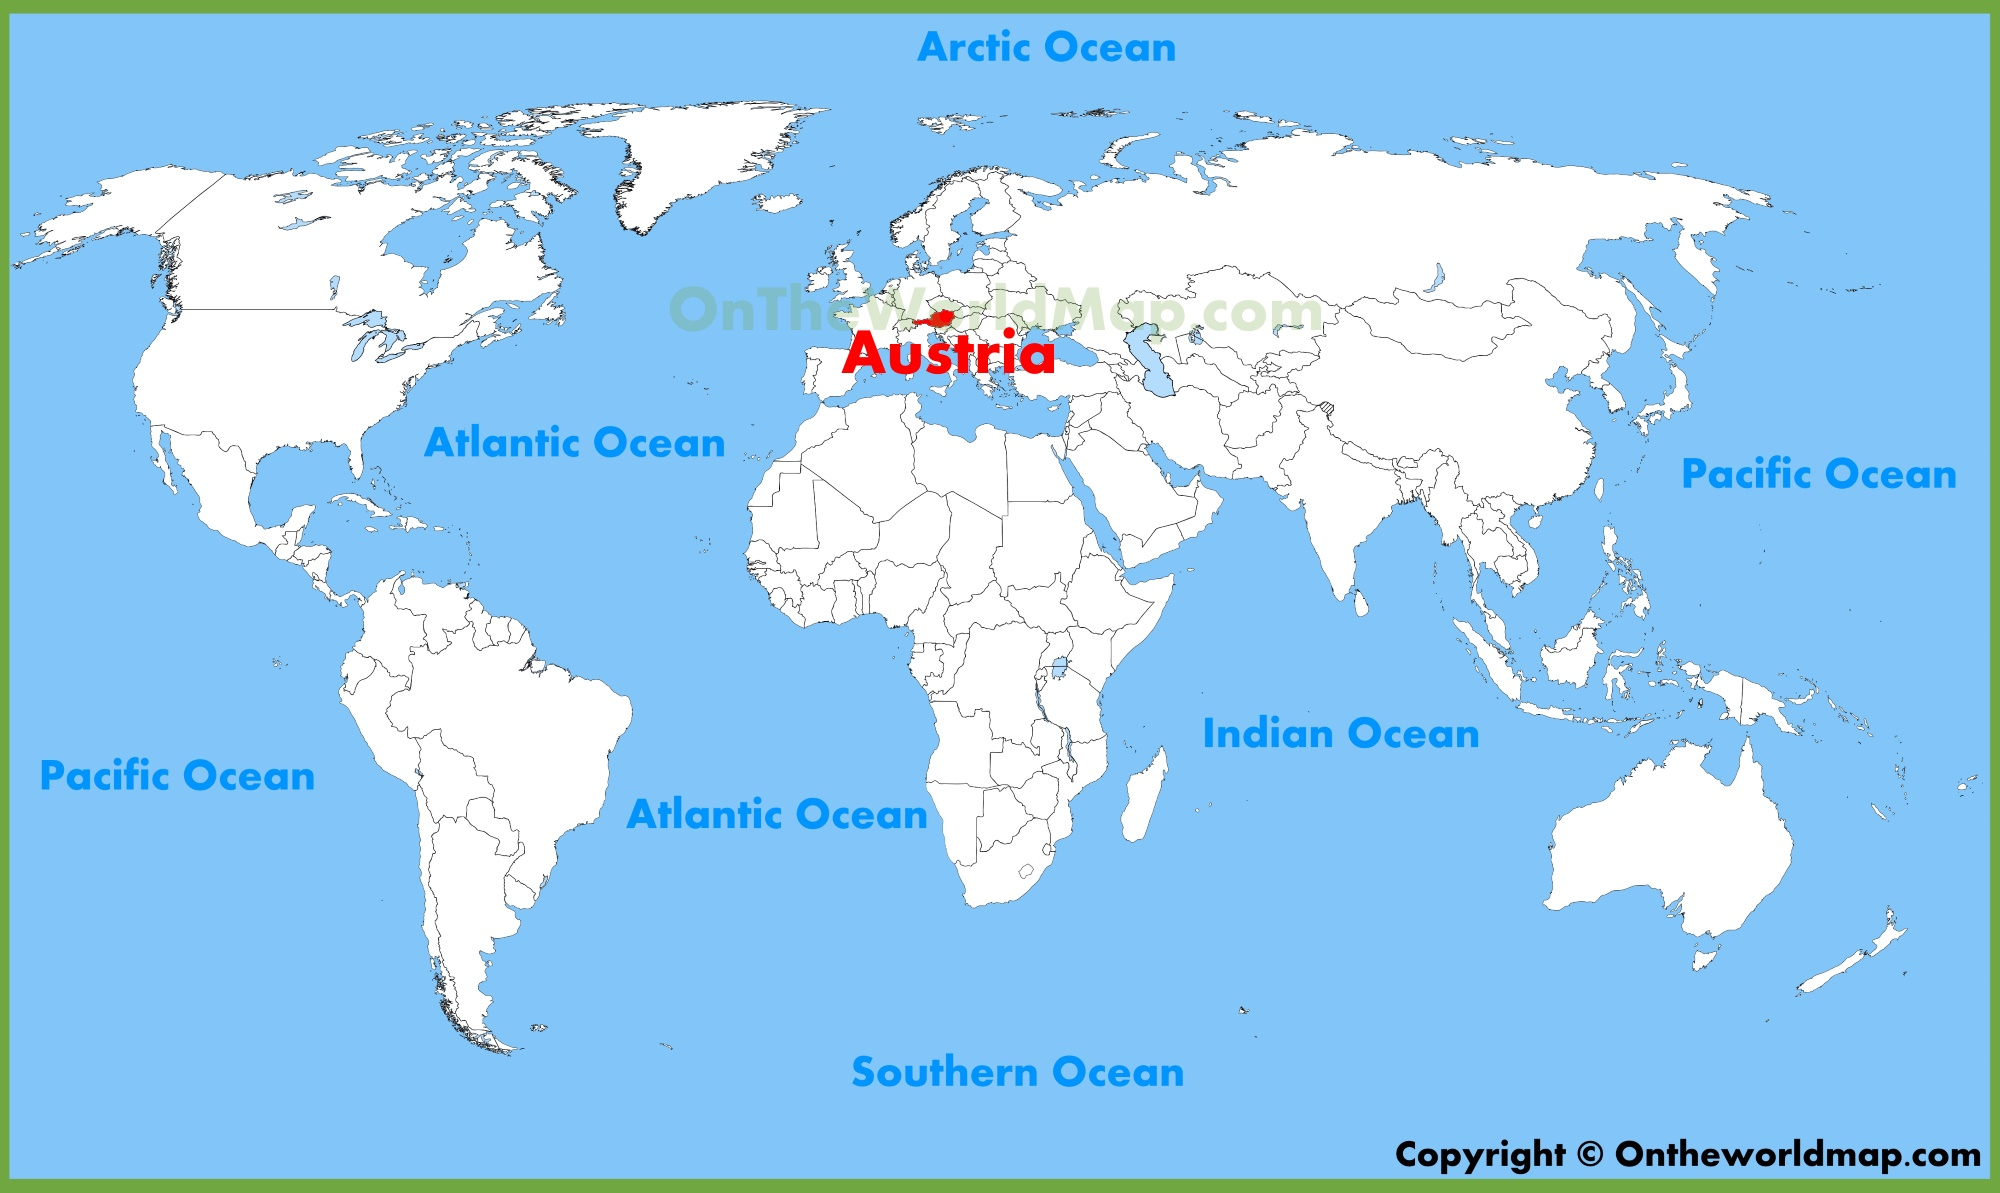 austria location on the world map, wire diagram, where is austria located on the world map